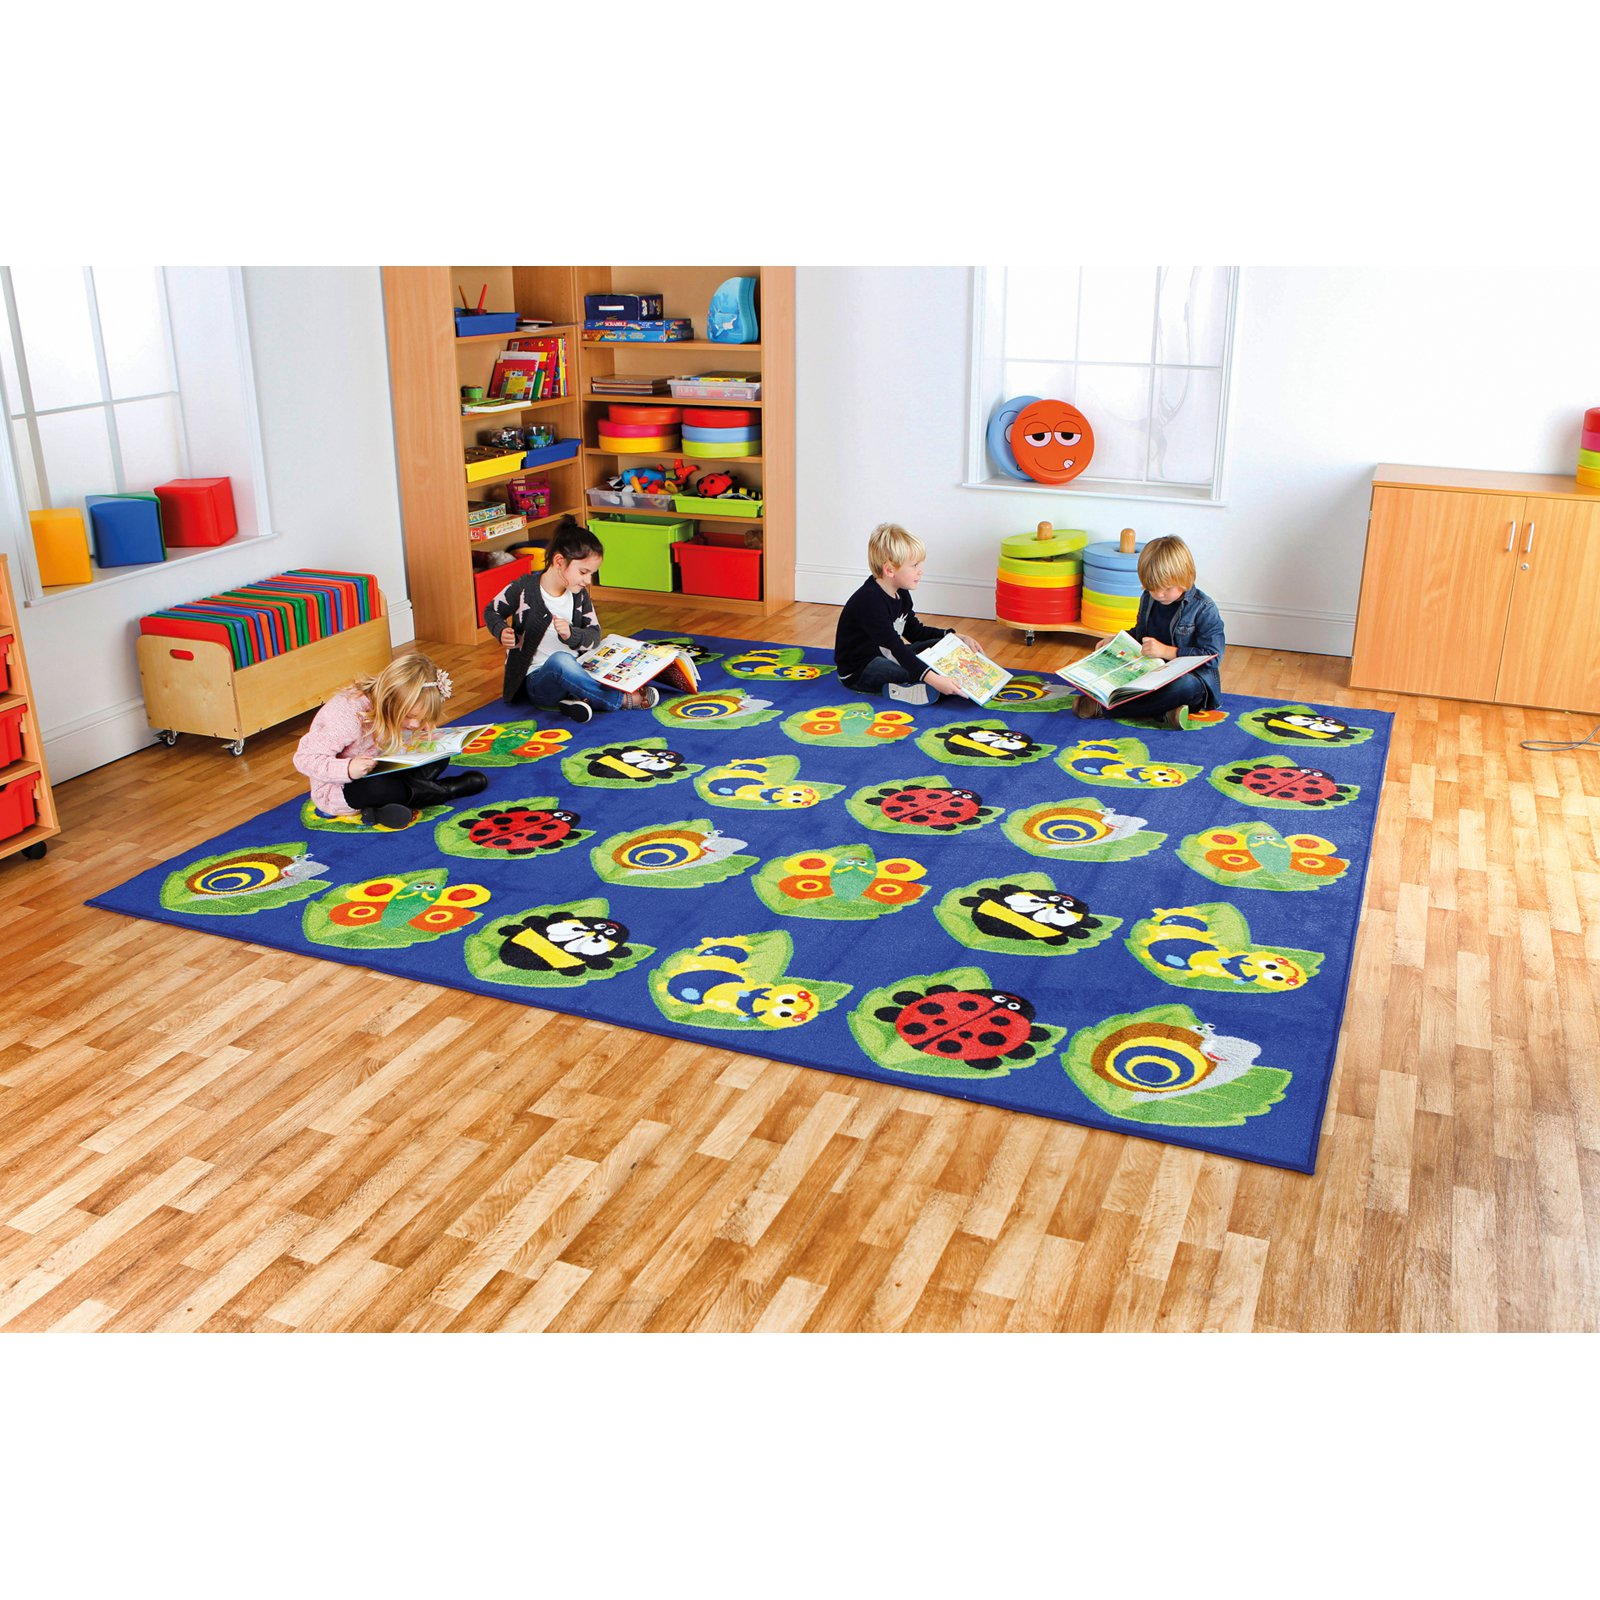 Kalokids Back to Nature Square Bug Placement Carpet